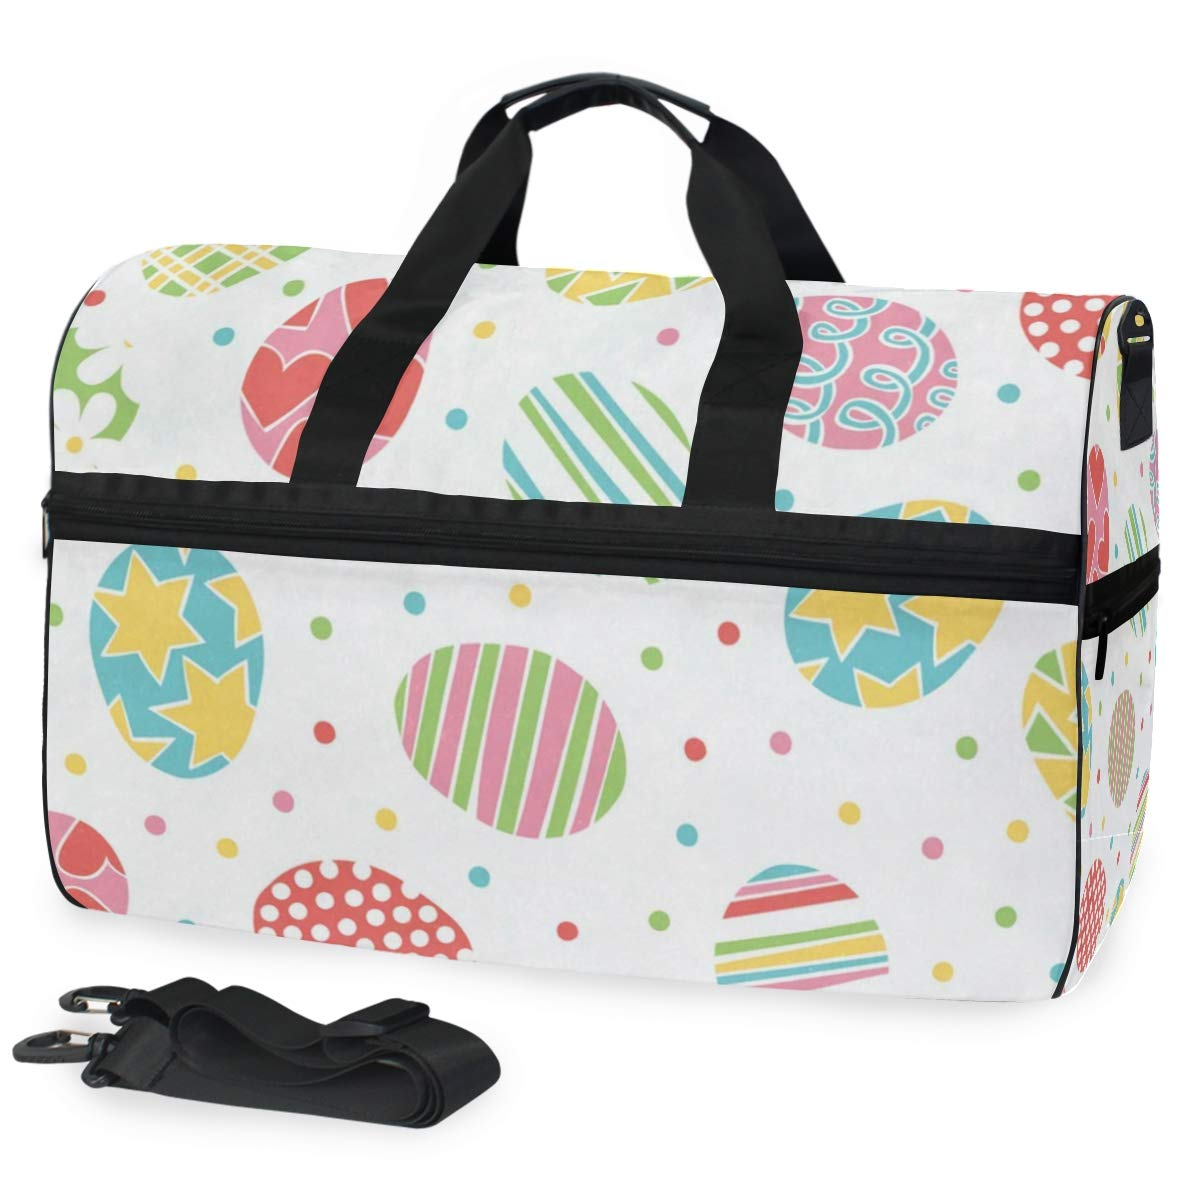 Travel Tote Luggage Weekender Duffle Bag Easter Colorful Eggs Large Canvas shoulder bag with Shoe Compartment